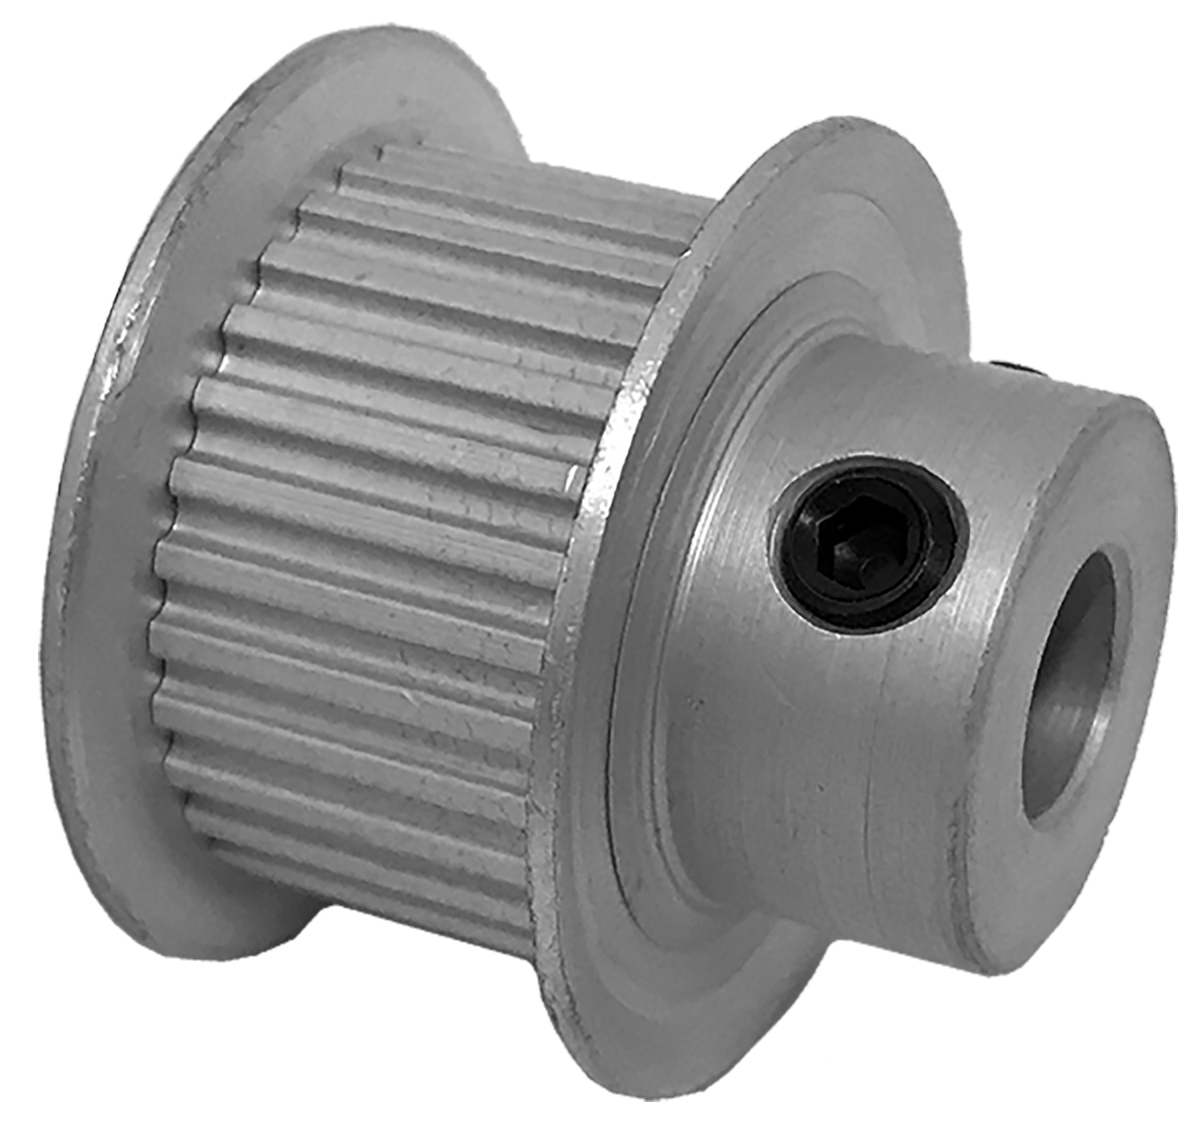 30MP037-6FA3 - Aluminum Imperial Pitch Pulleys